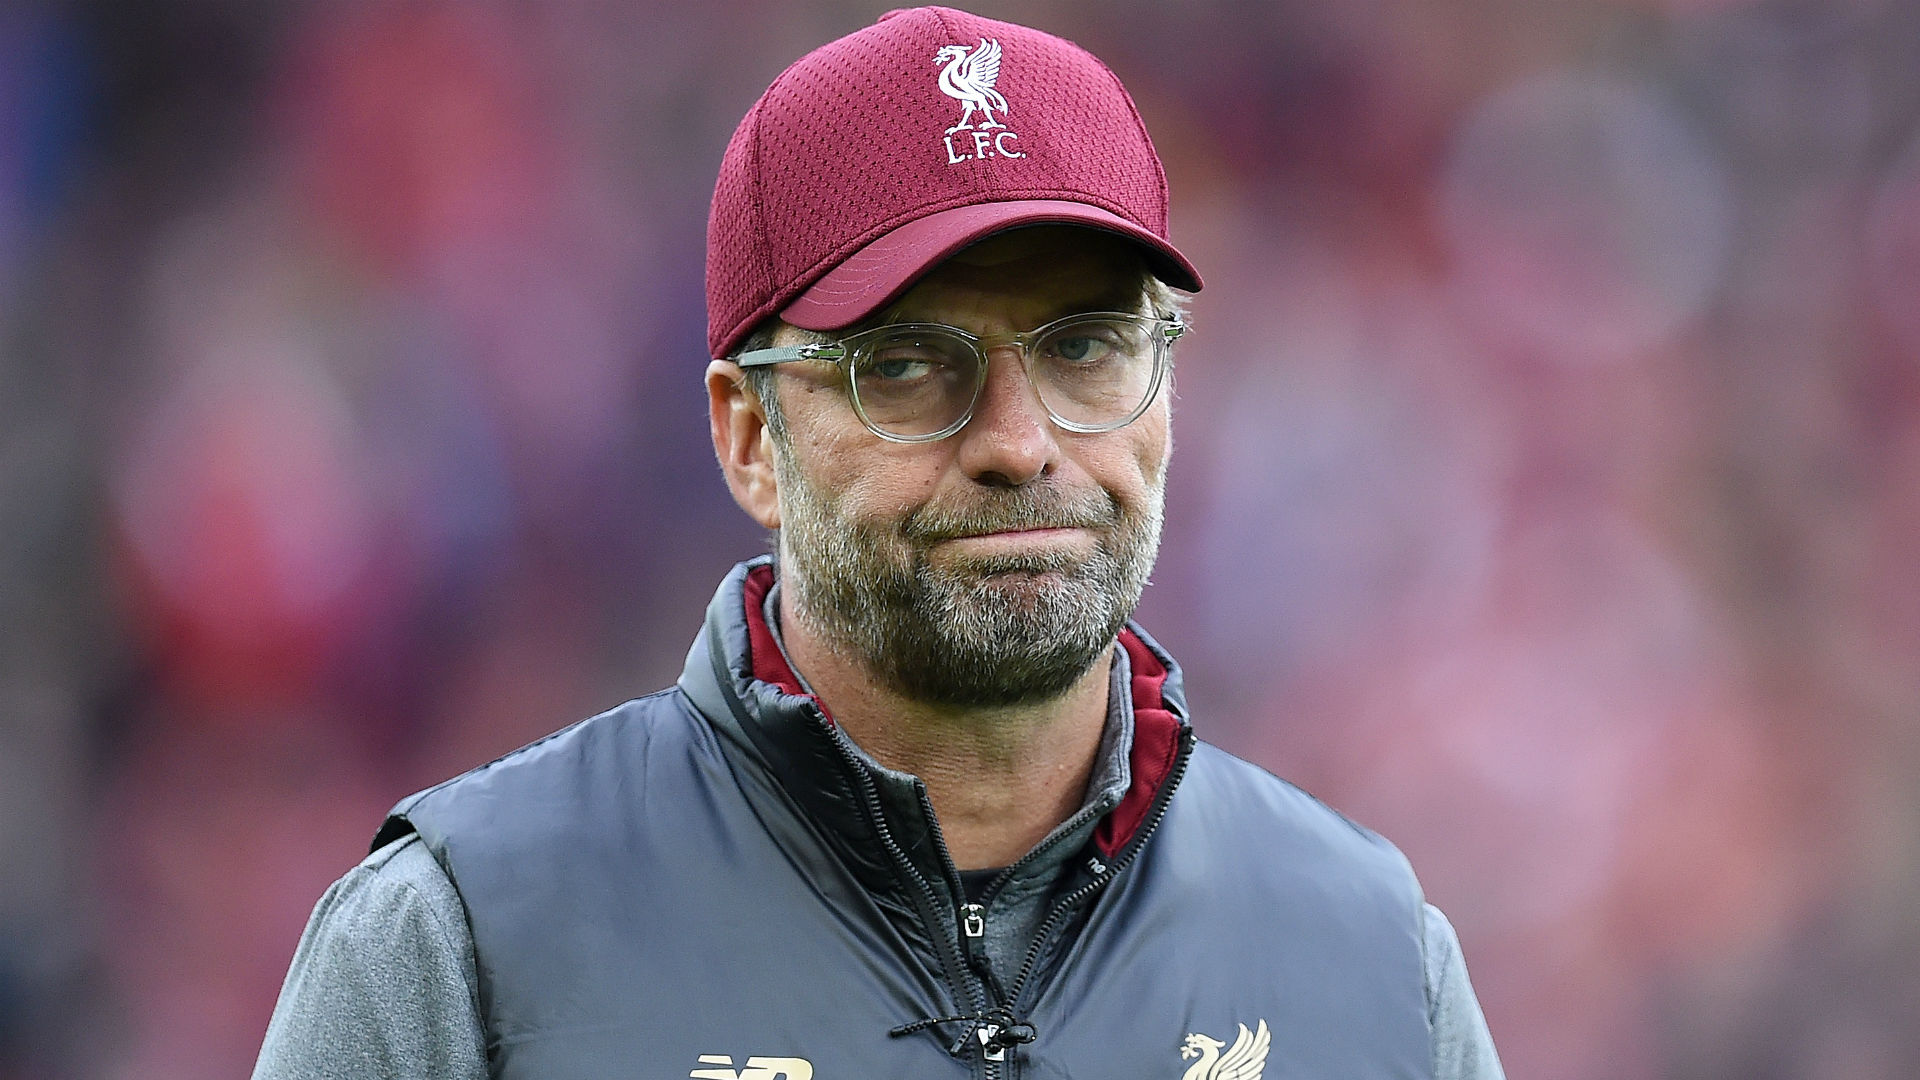 After City draw, Liverpool's Klopp slams 'senseless' Nations League